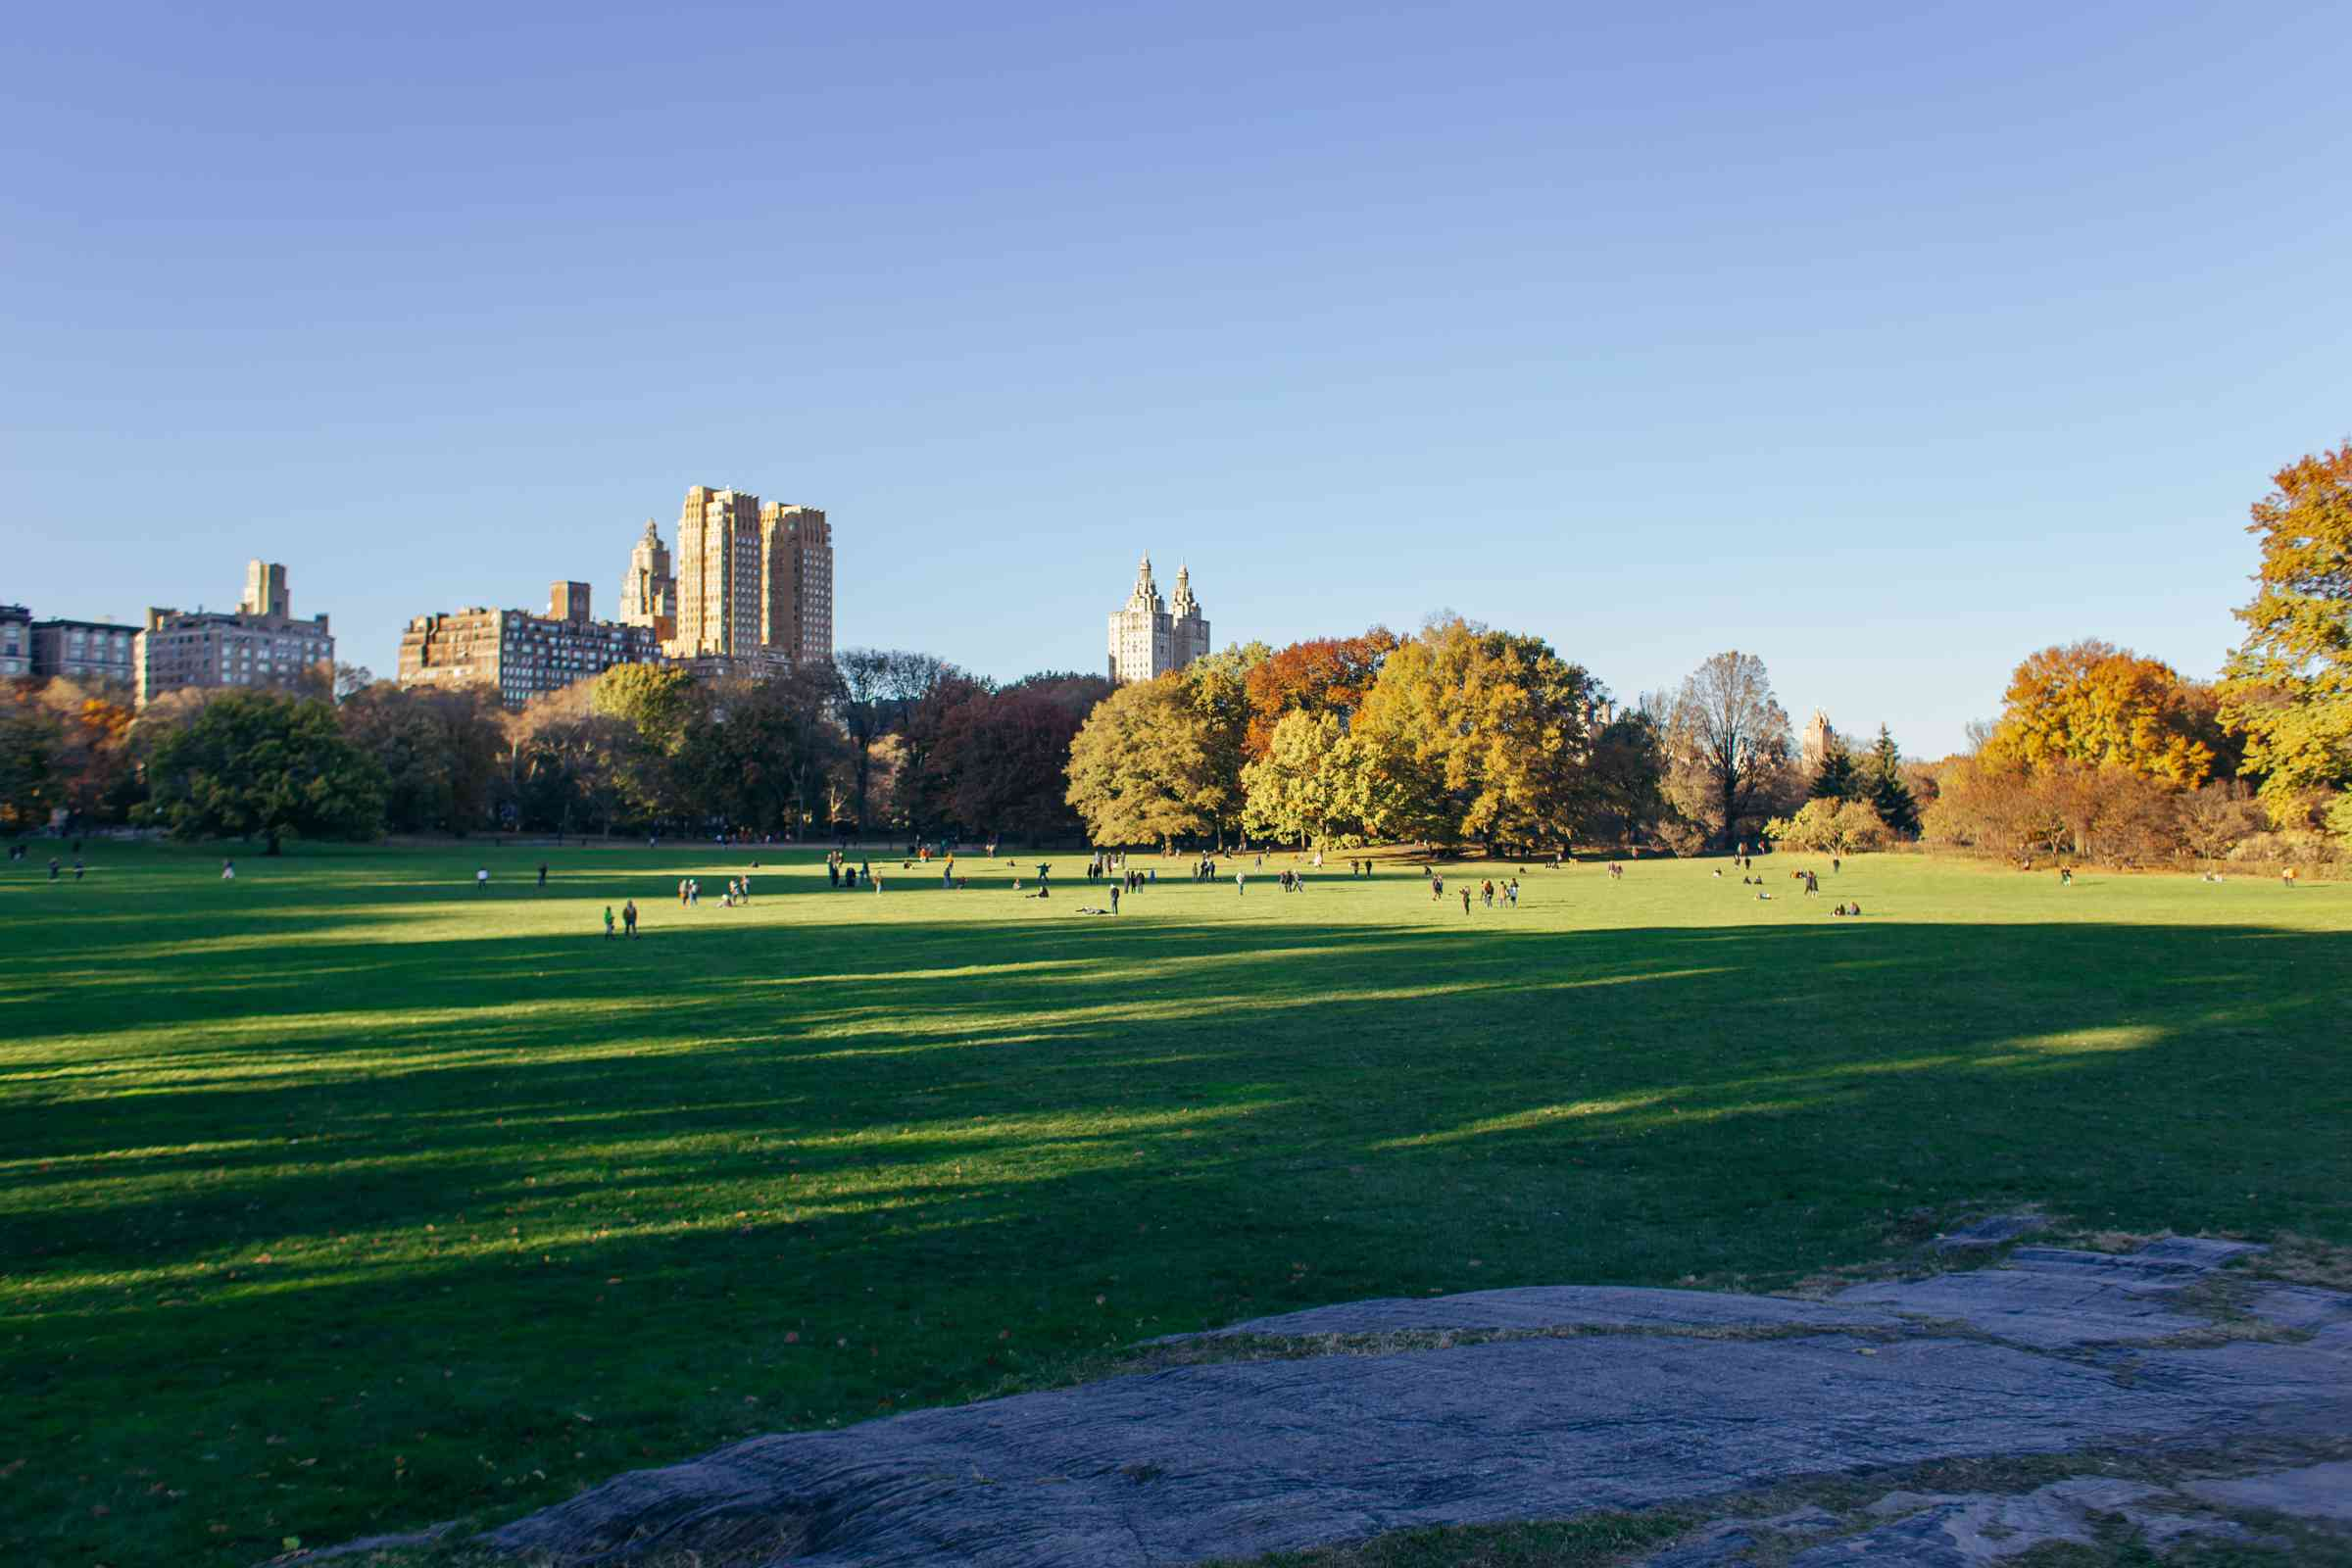 Sheep Meadow in Central Park in NYC